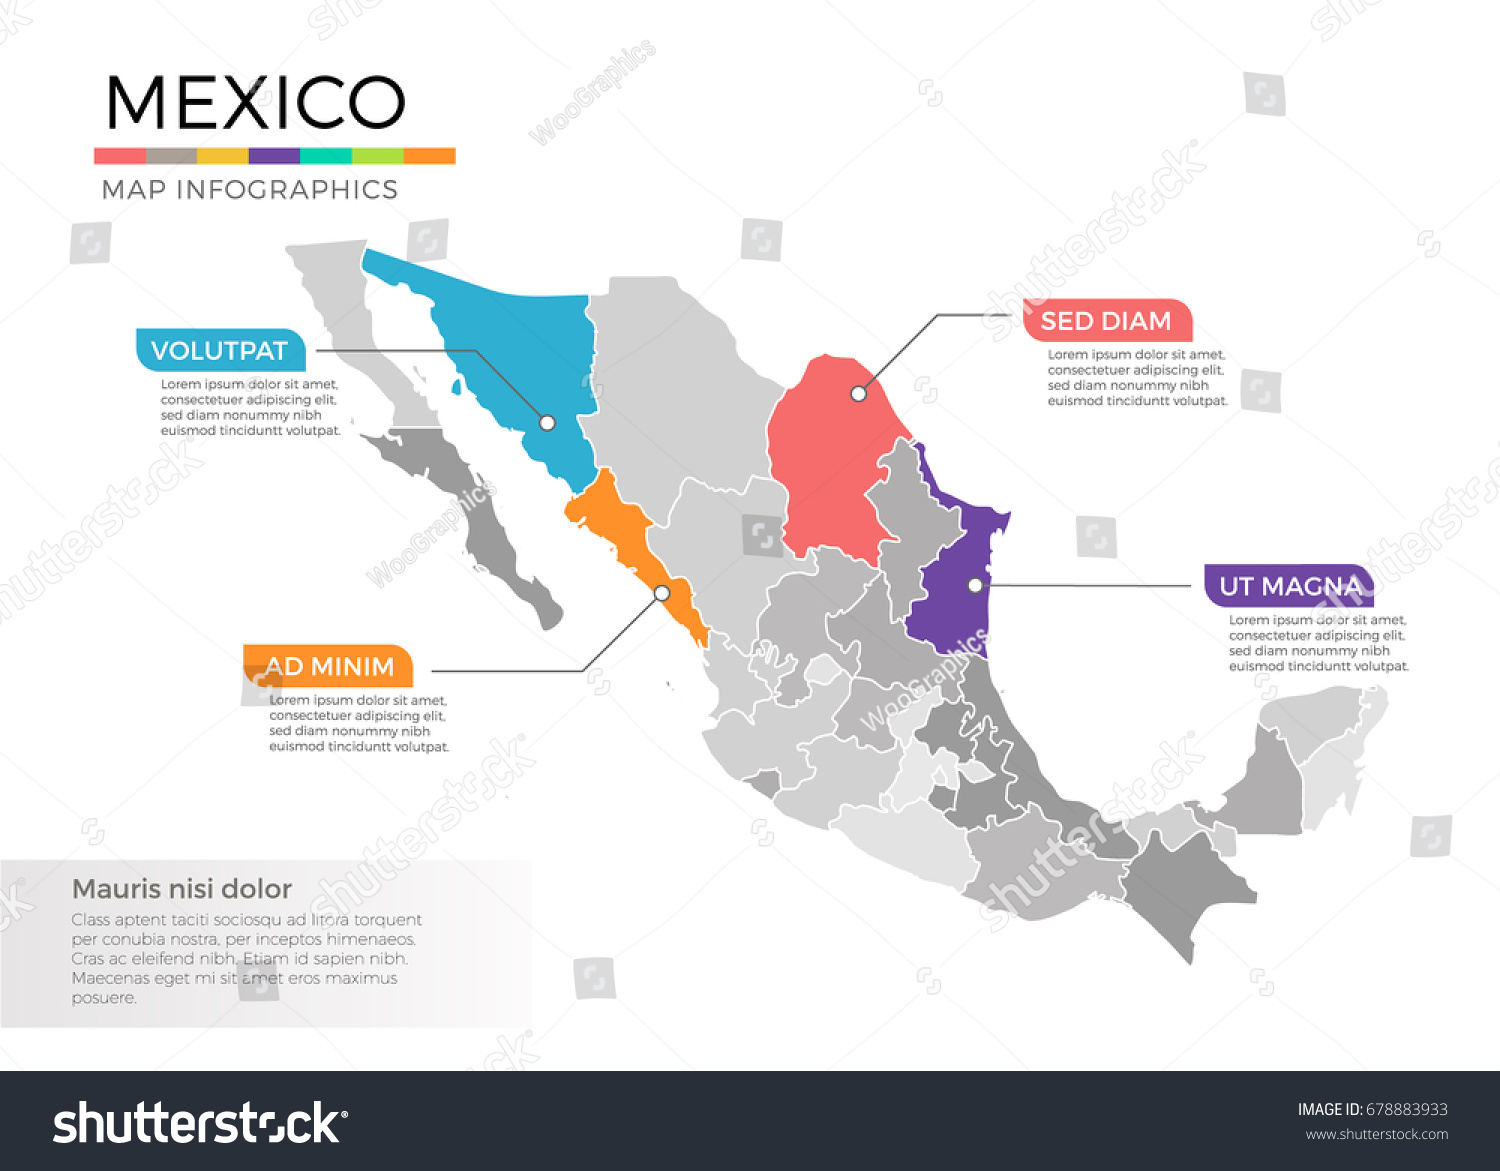 Mexico Map Infographics Vector Template Regions Stock Vector - Mexico regions map